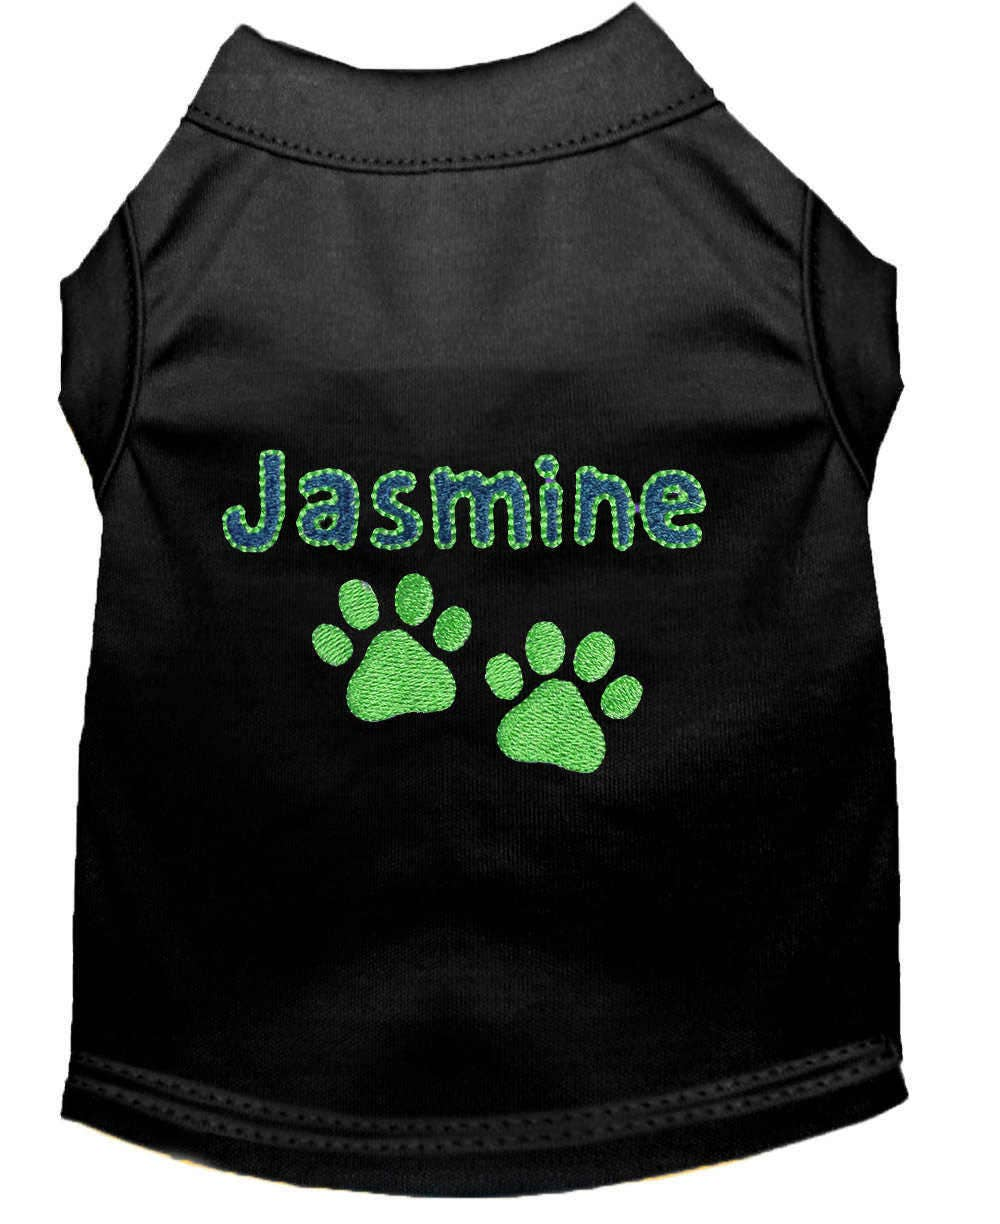 Design your own t-shirt edmonton